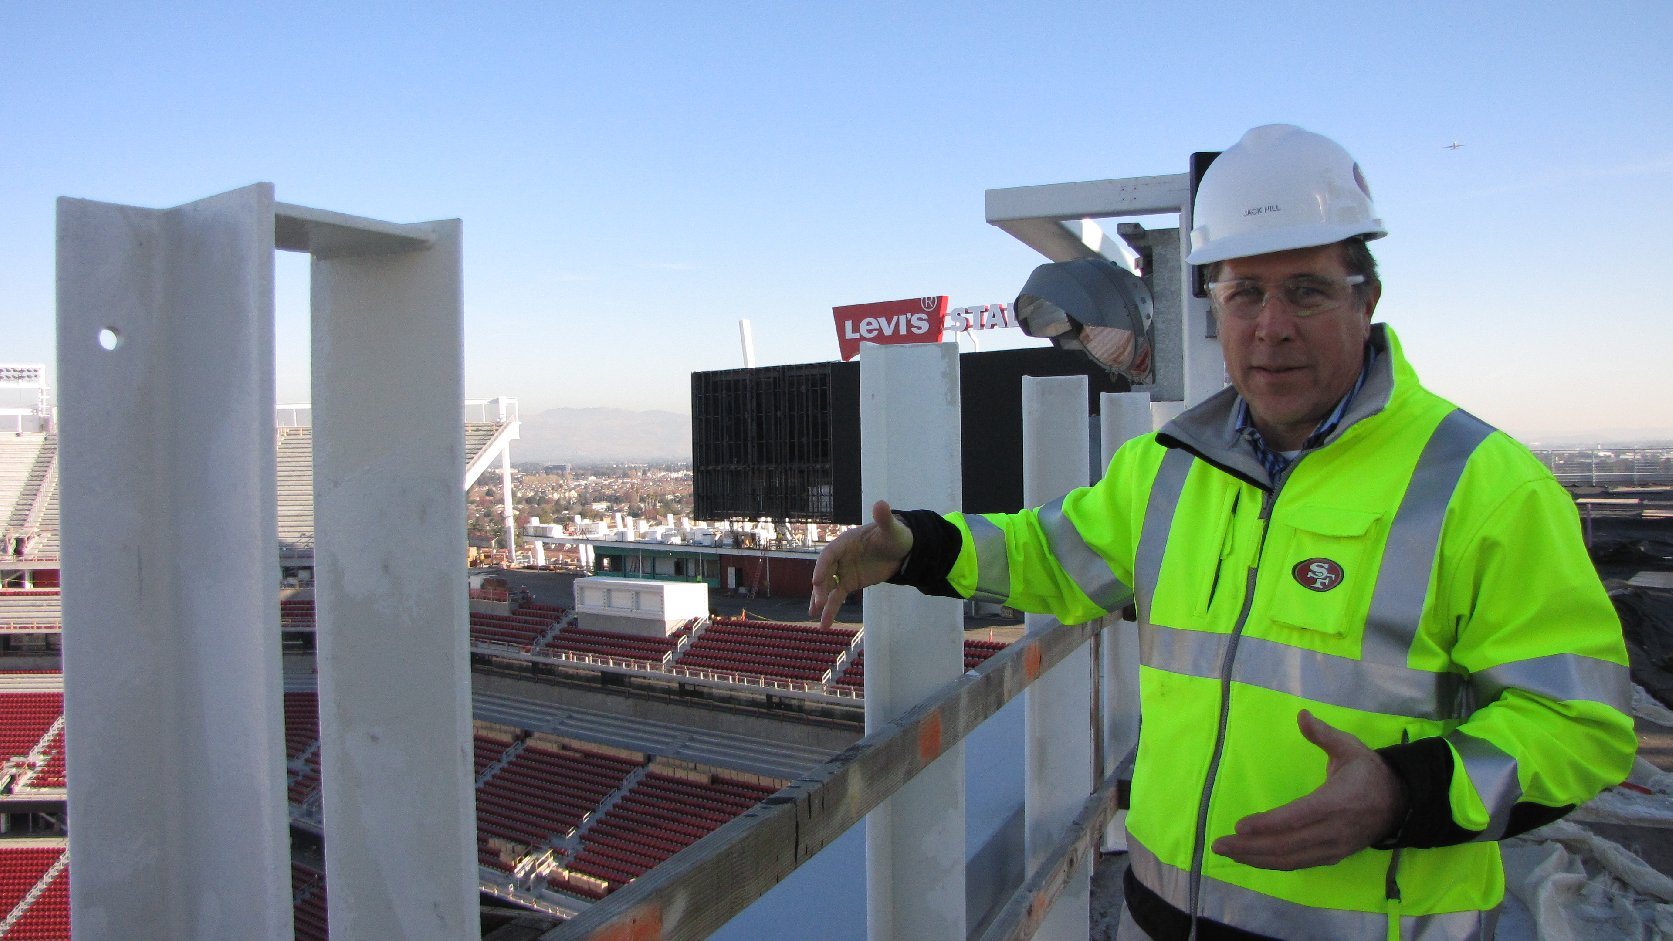 As project executive, Jack Hill oversees the construction of Levi's Stadium. (Molly Samuel/KQED)